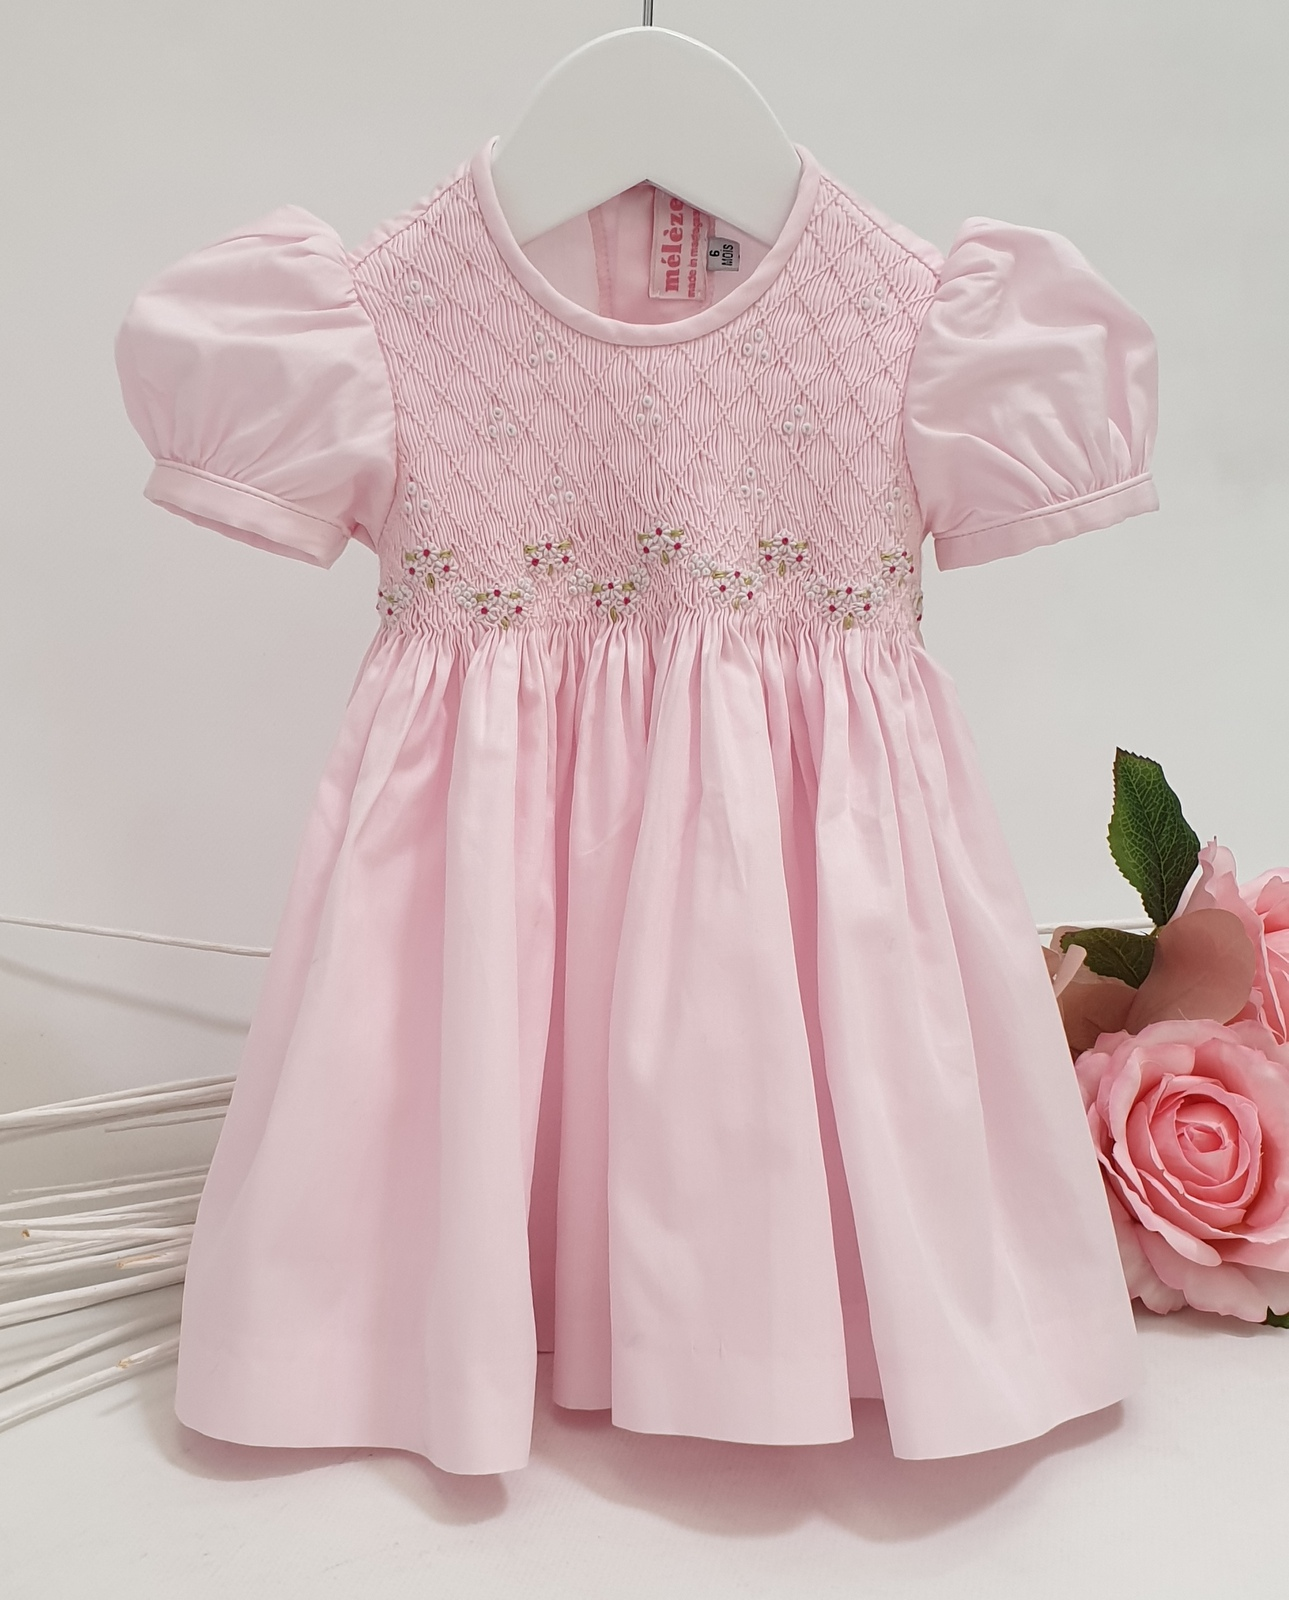 Baby Pink Hand Smock and Embroidery Dress